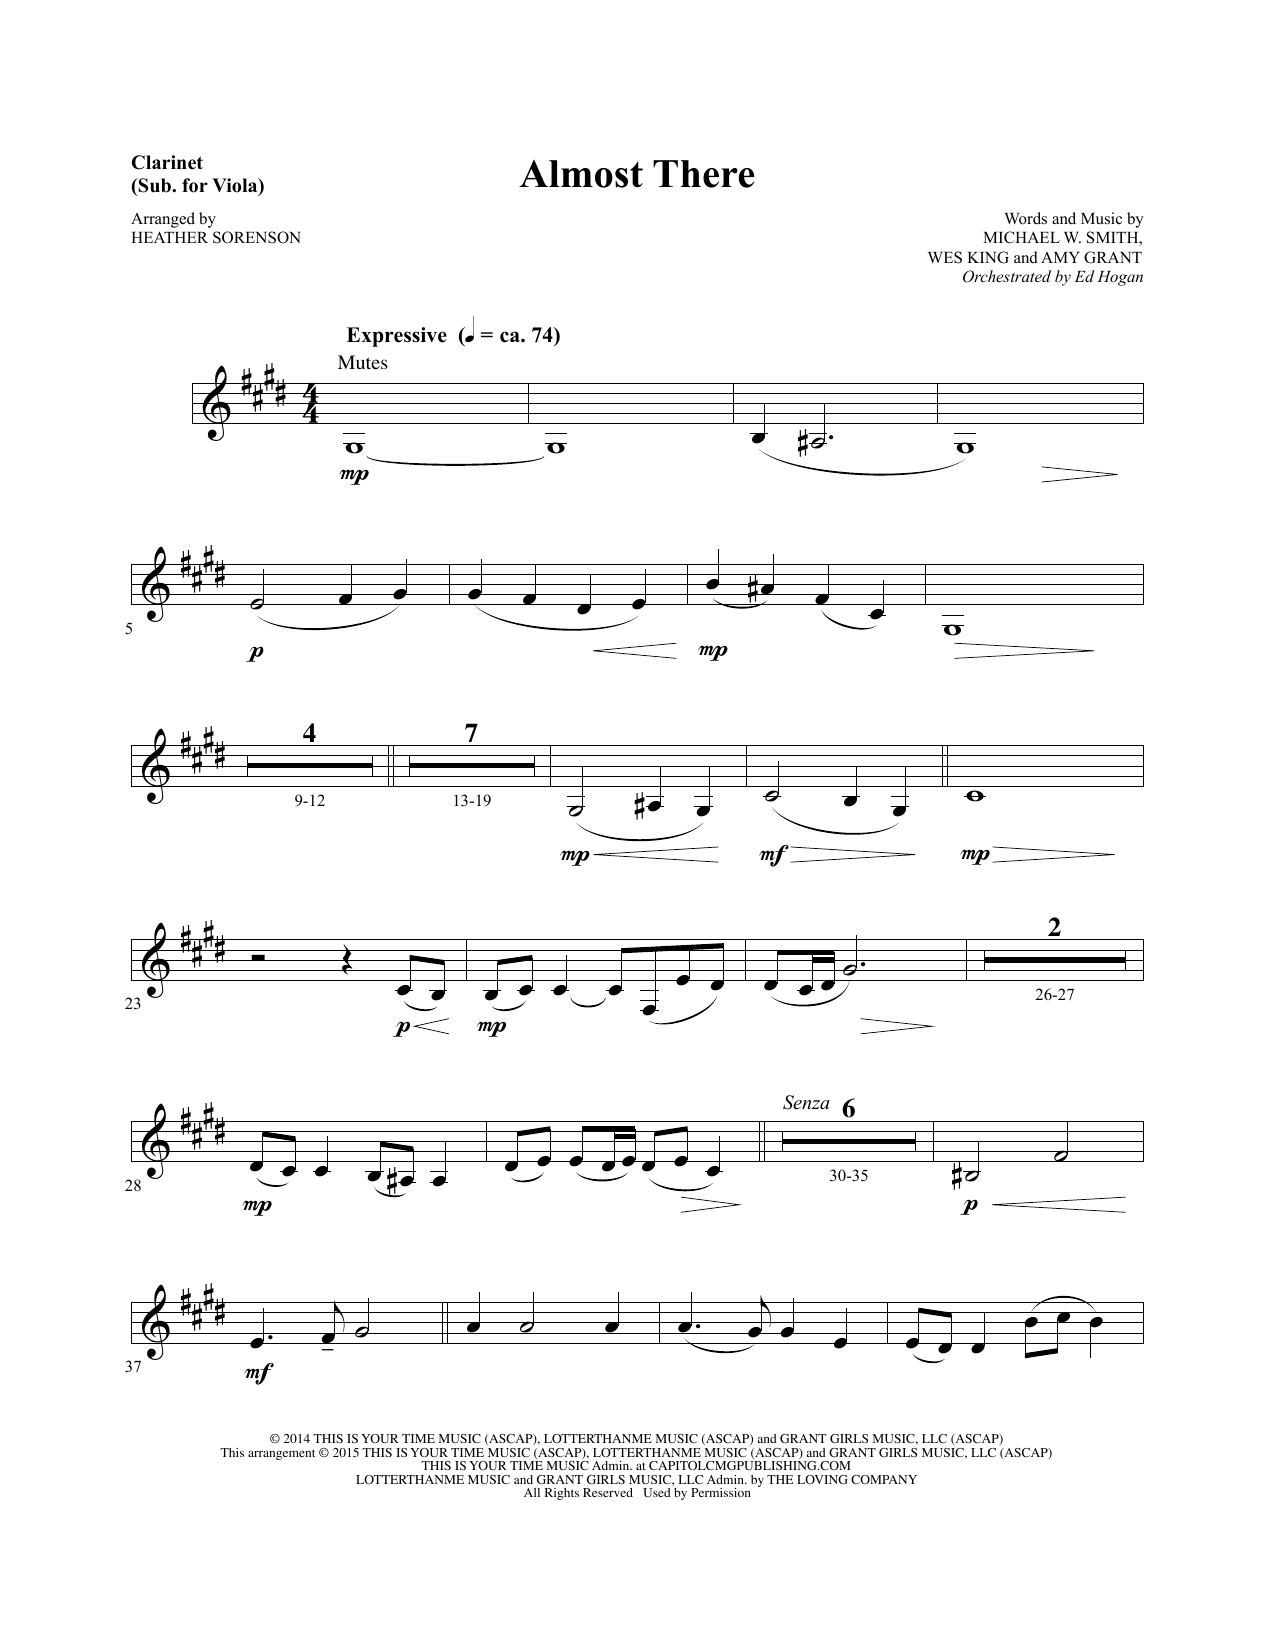 Almost There - Clarinet (sub Viola) sheet music